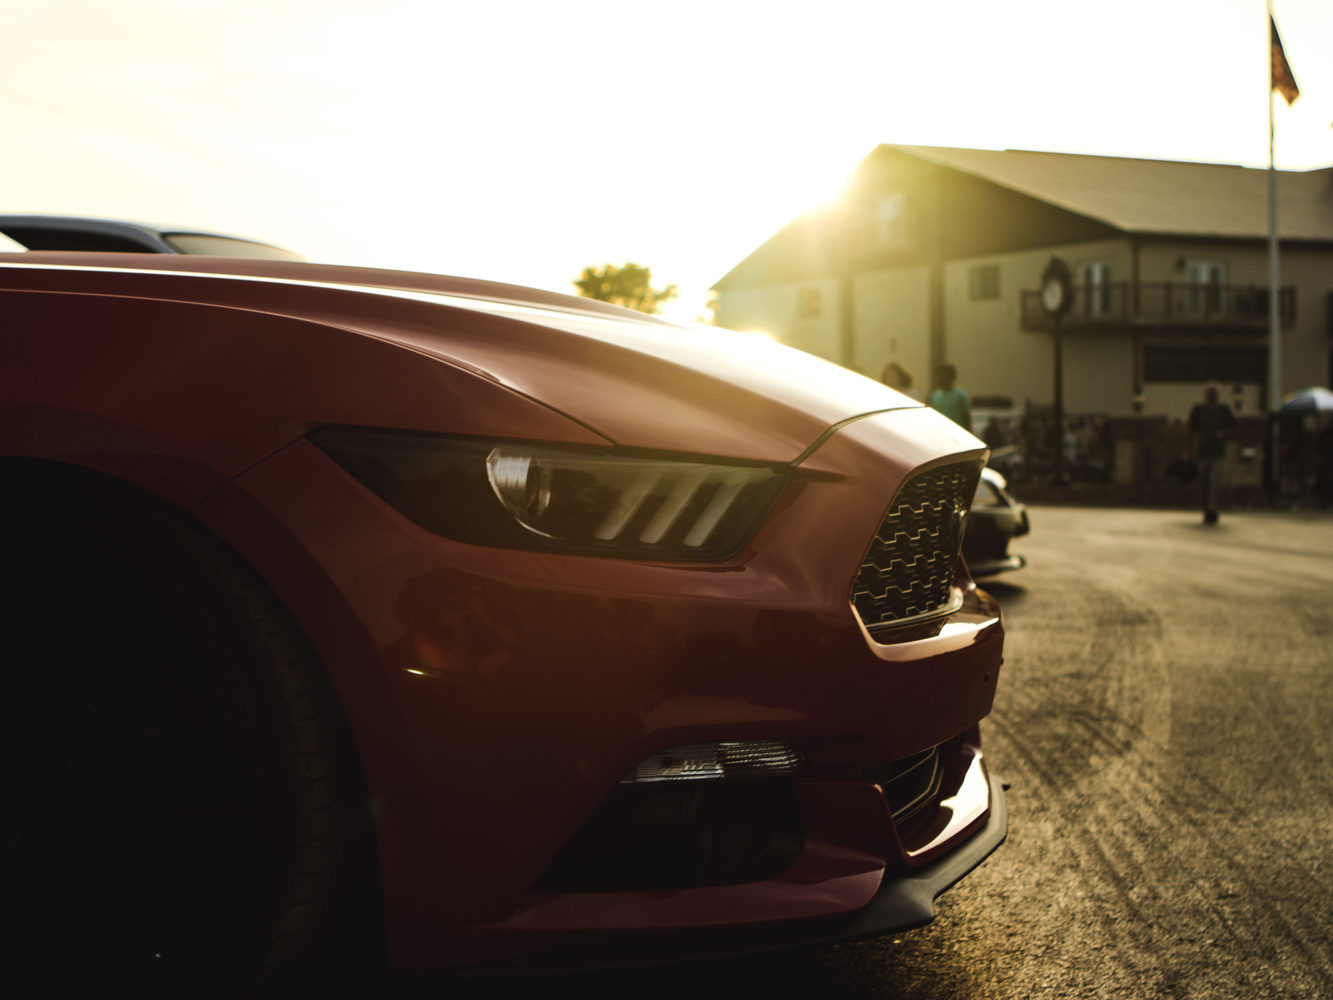 Mustang at Sunset by Nick Cody